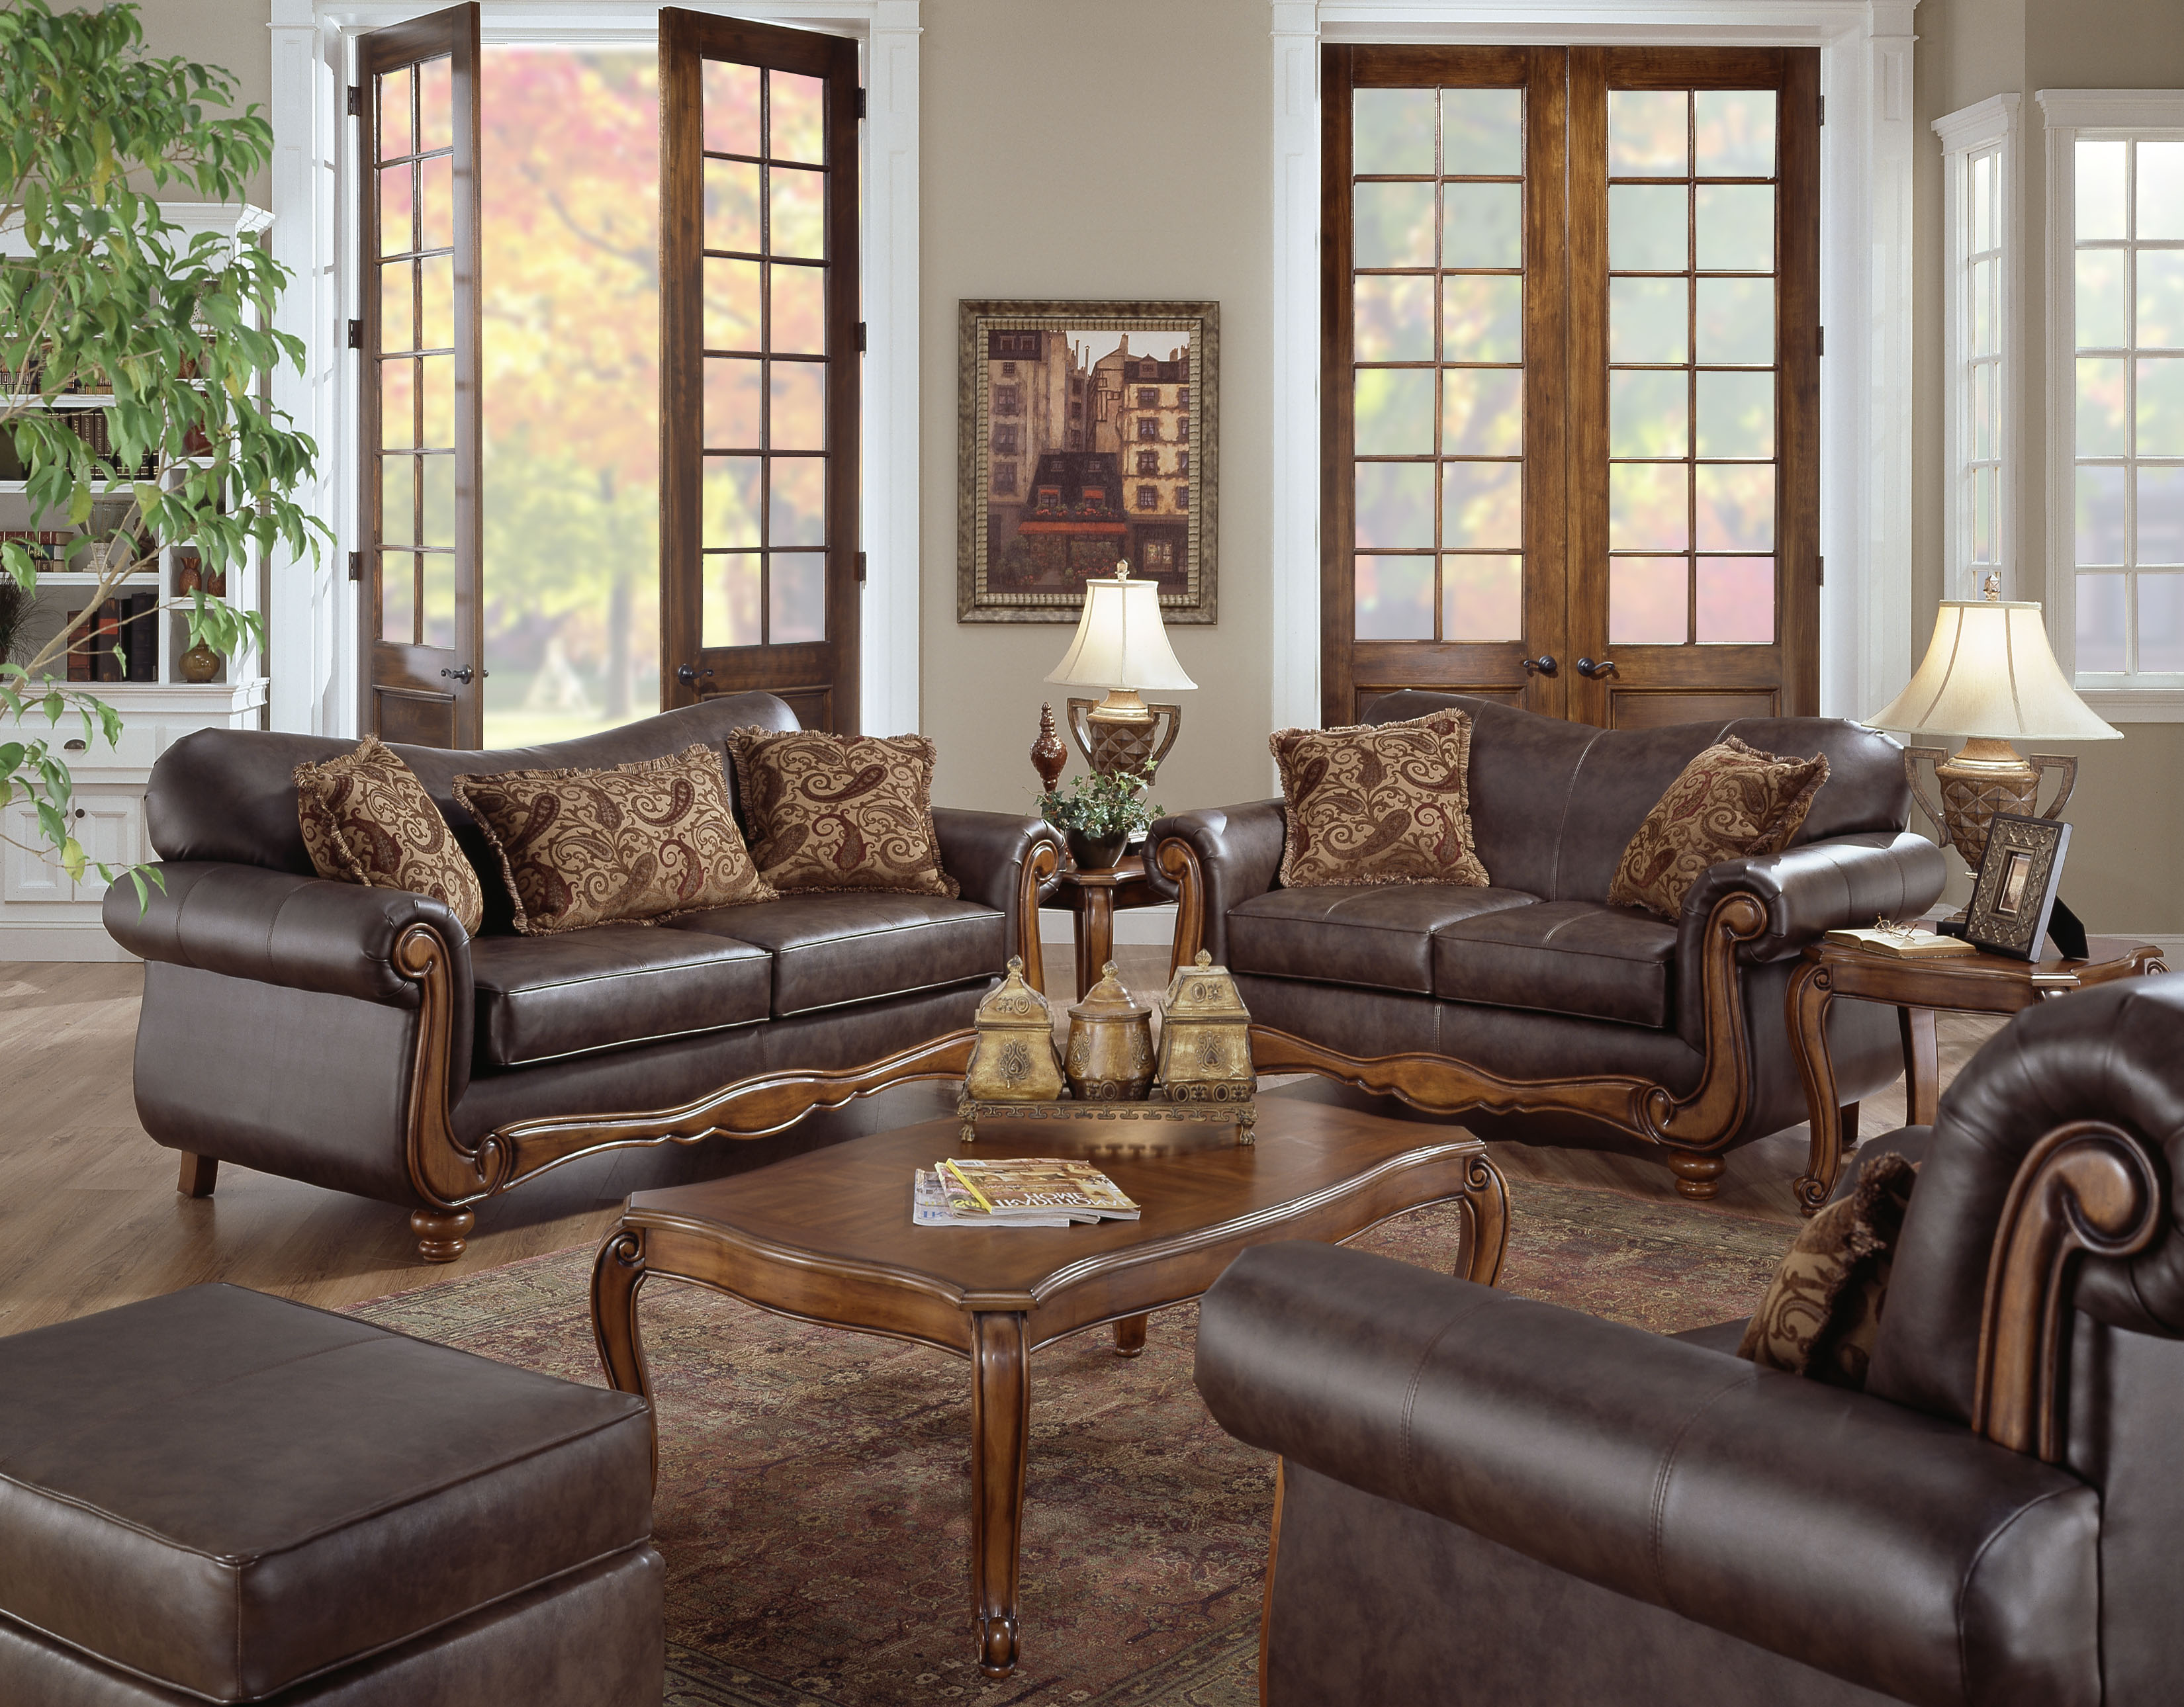 Stunning leather living room furniture living room sets leather surprising leather living room sets yxhhloj